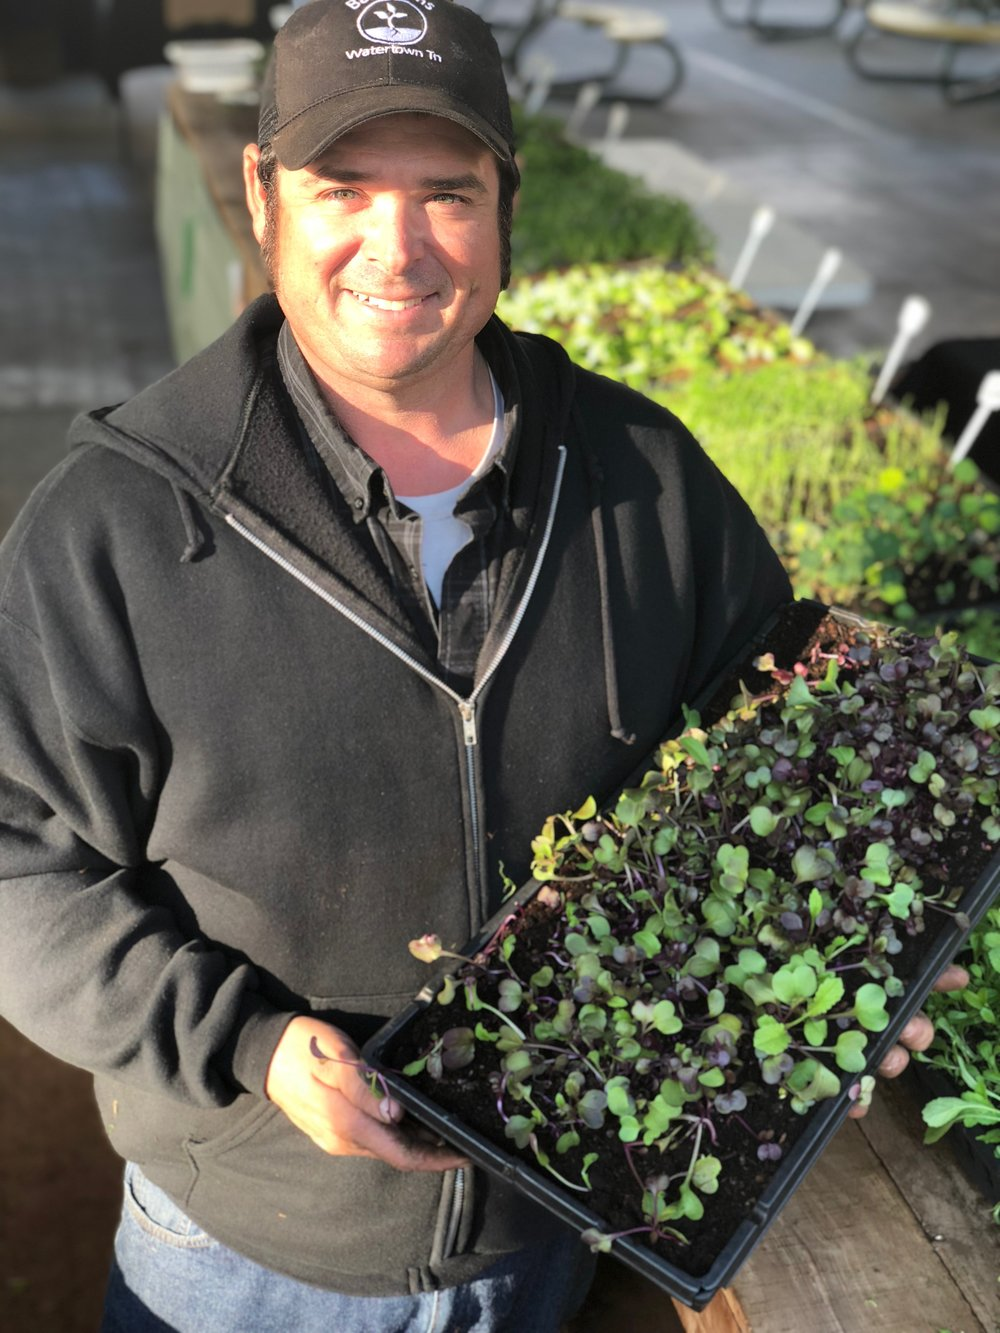 Matthew Bass plans to grow some 300 trays of microgreens at NFM weekly in an area that will occupy the equivalent of about half a tennis court.